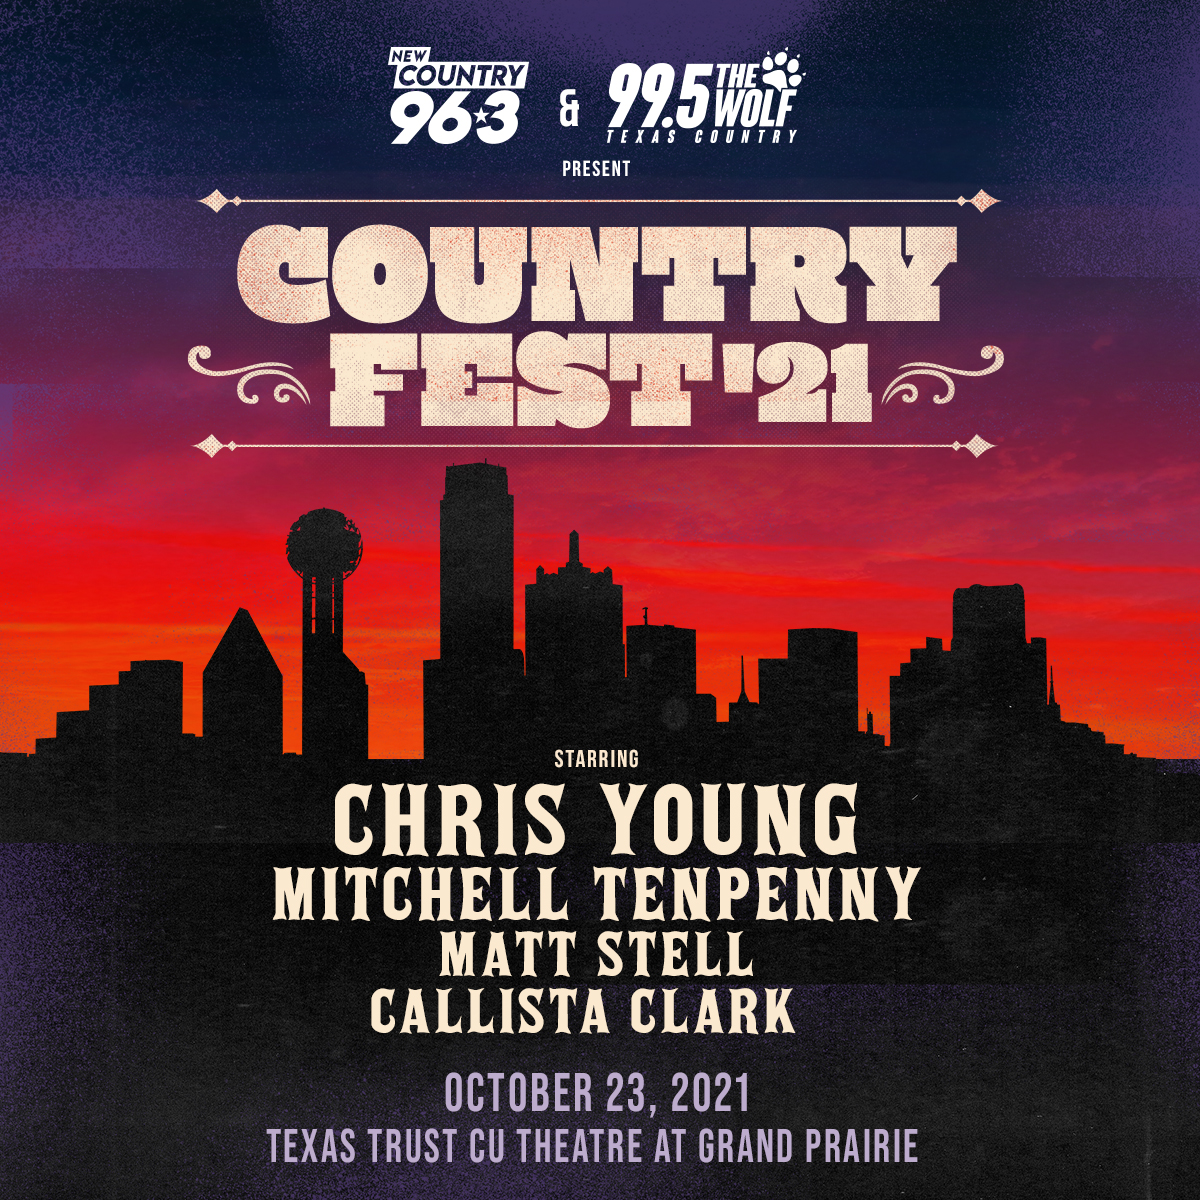 COUNTRYFEST '21 featuring Chris Young | 10.23.21